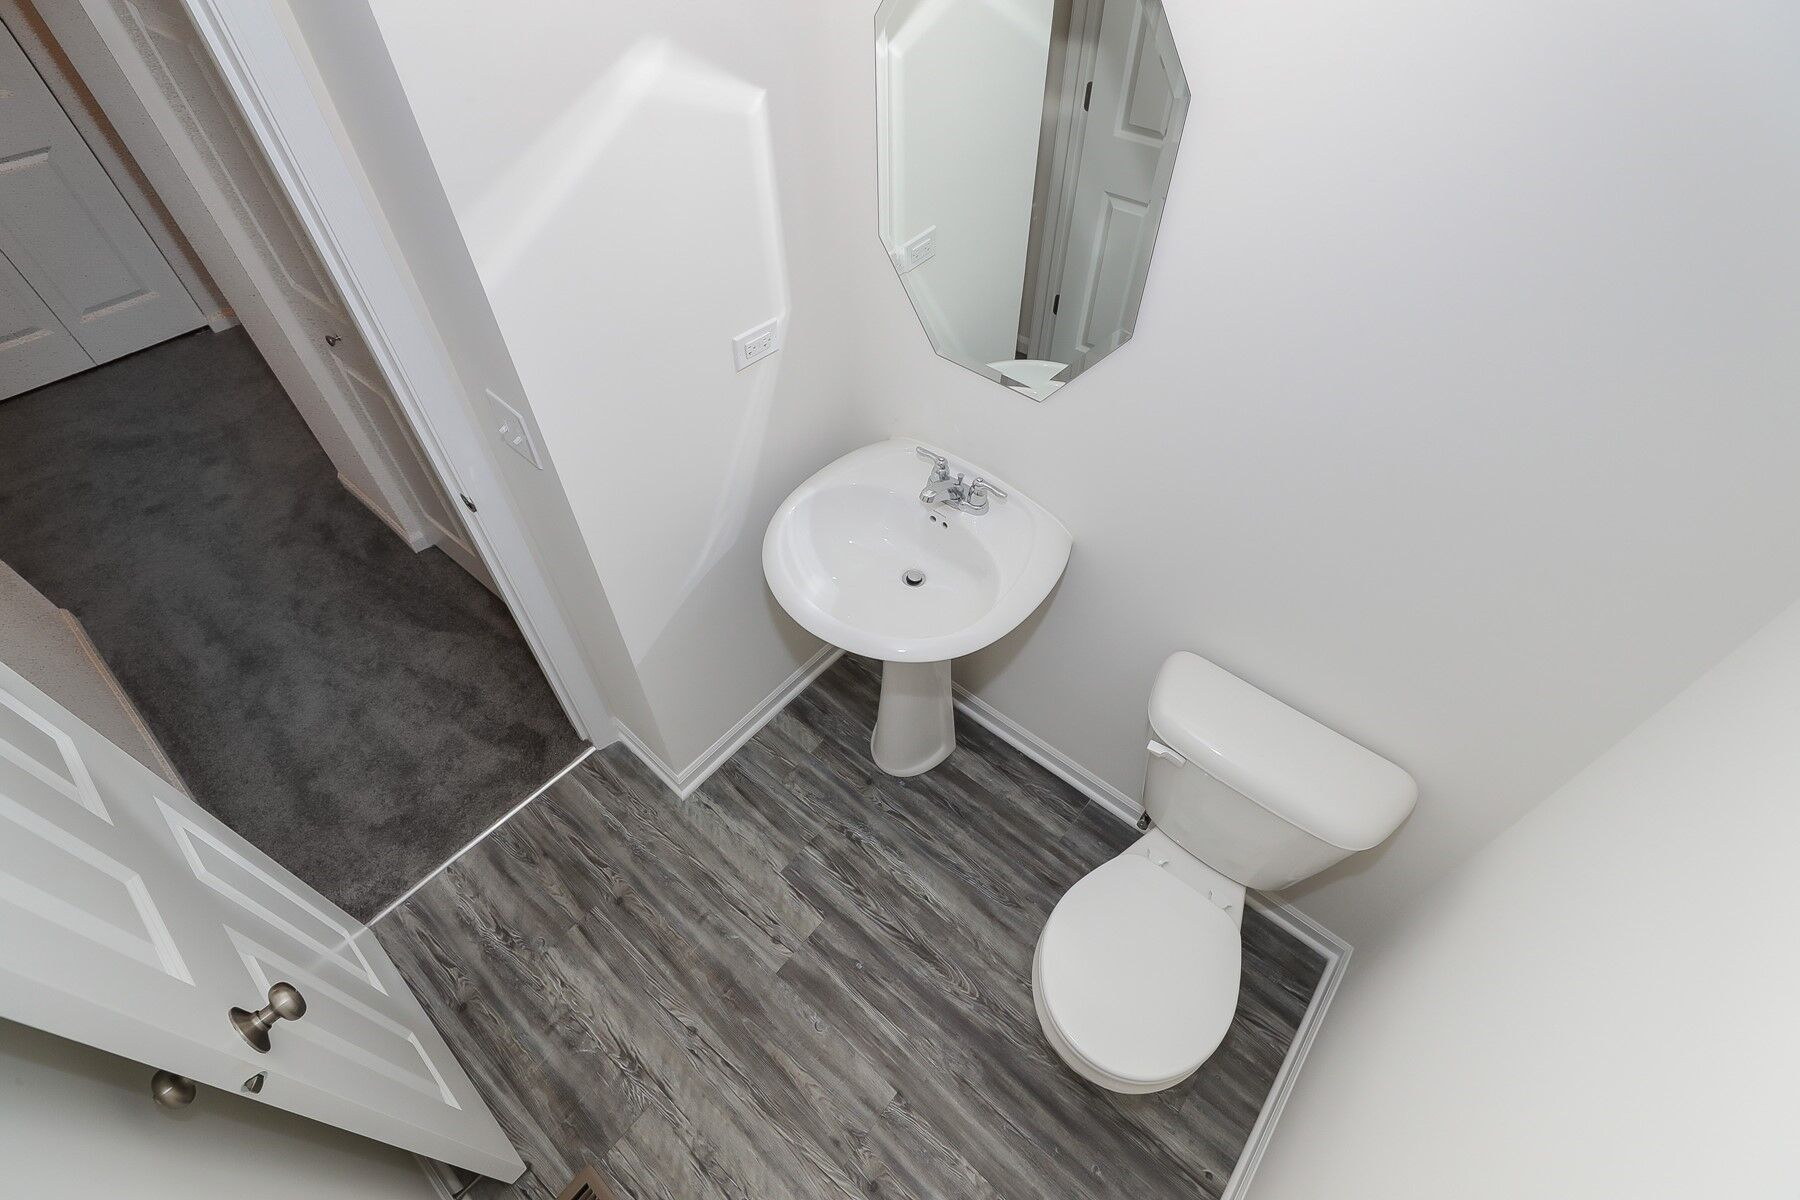 Bathroom featured in the Talcott By M/I Homes in Chicago, IL